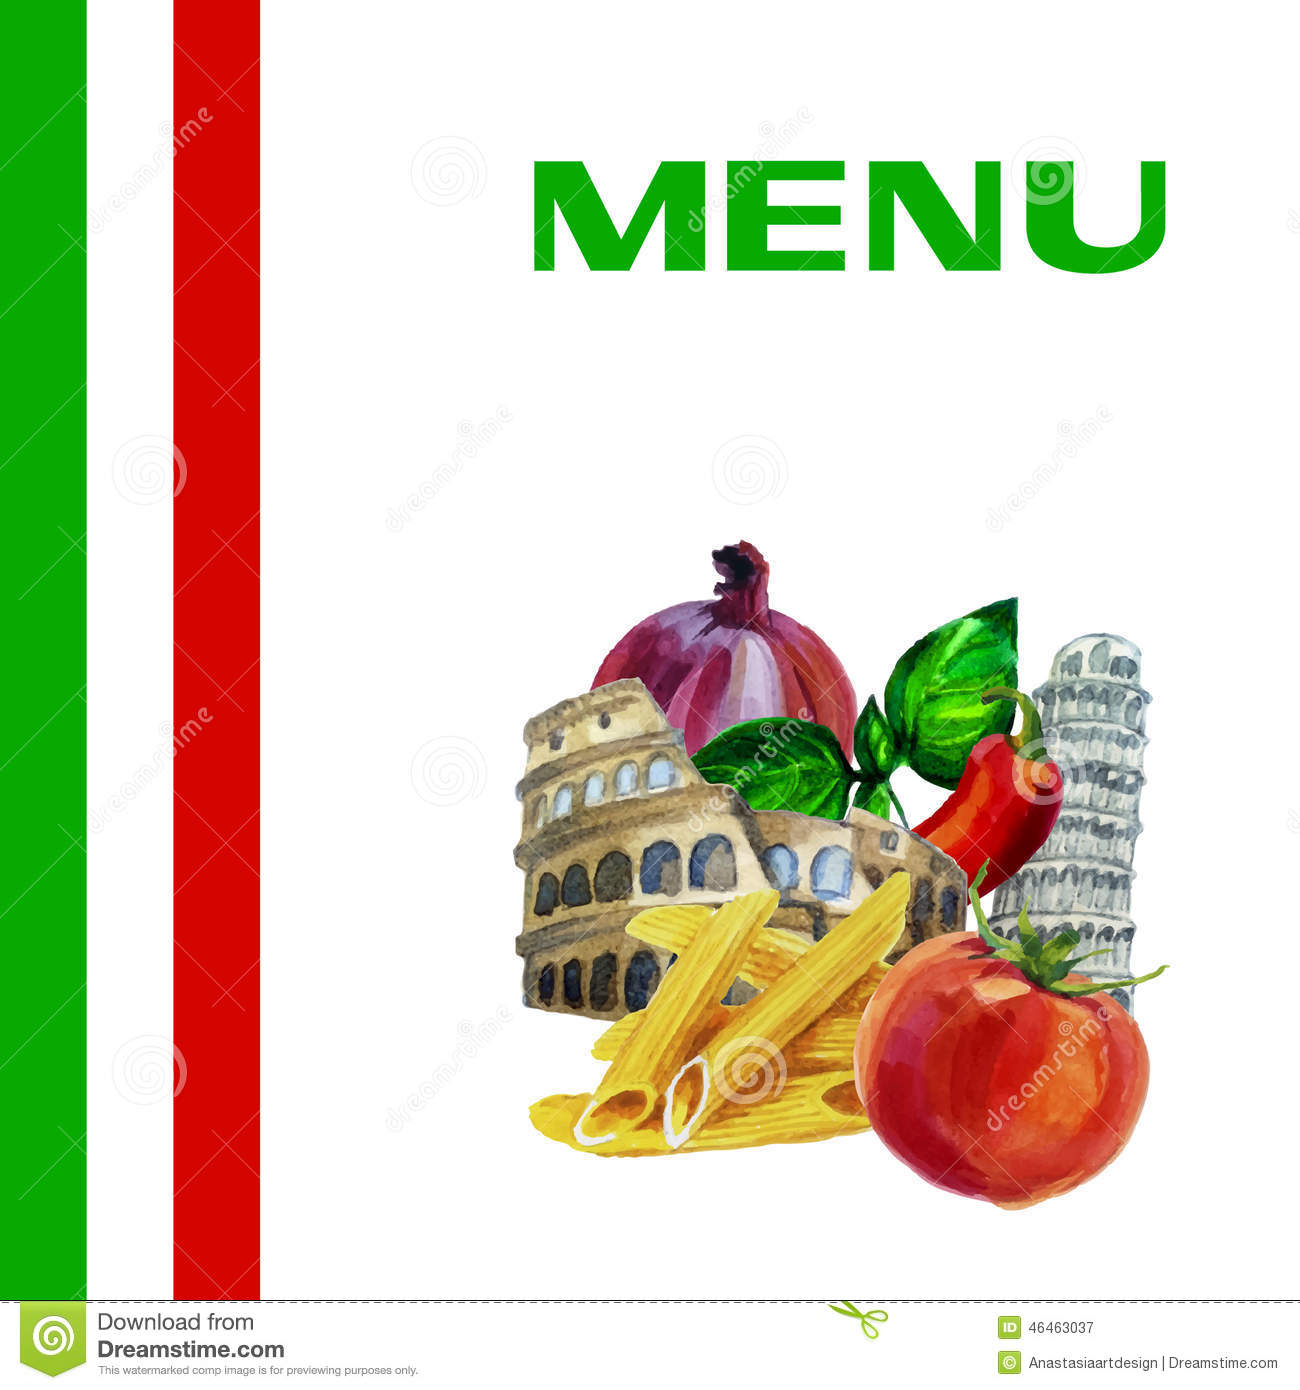 italian cuisine menu design background stock vector - illustration